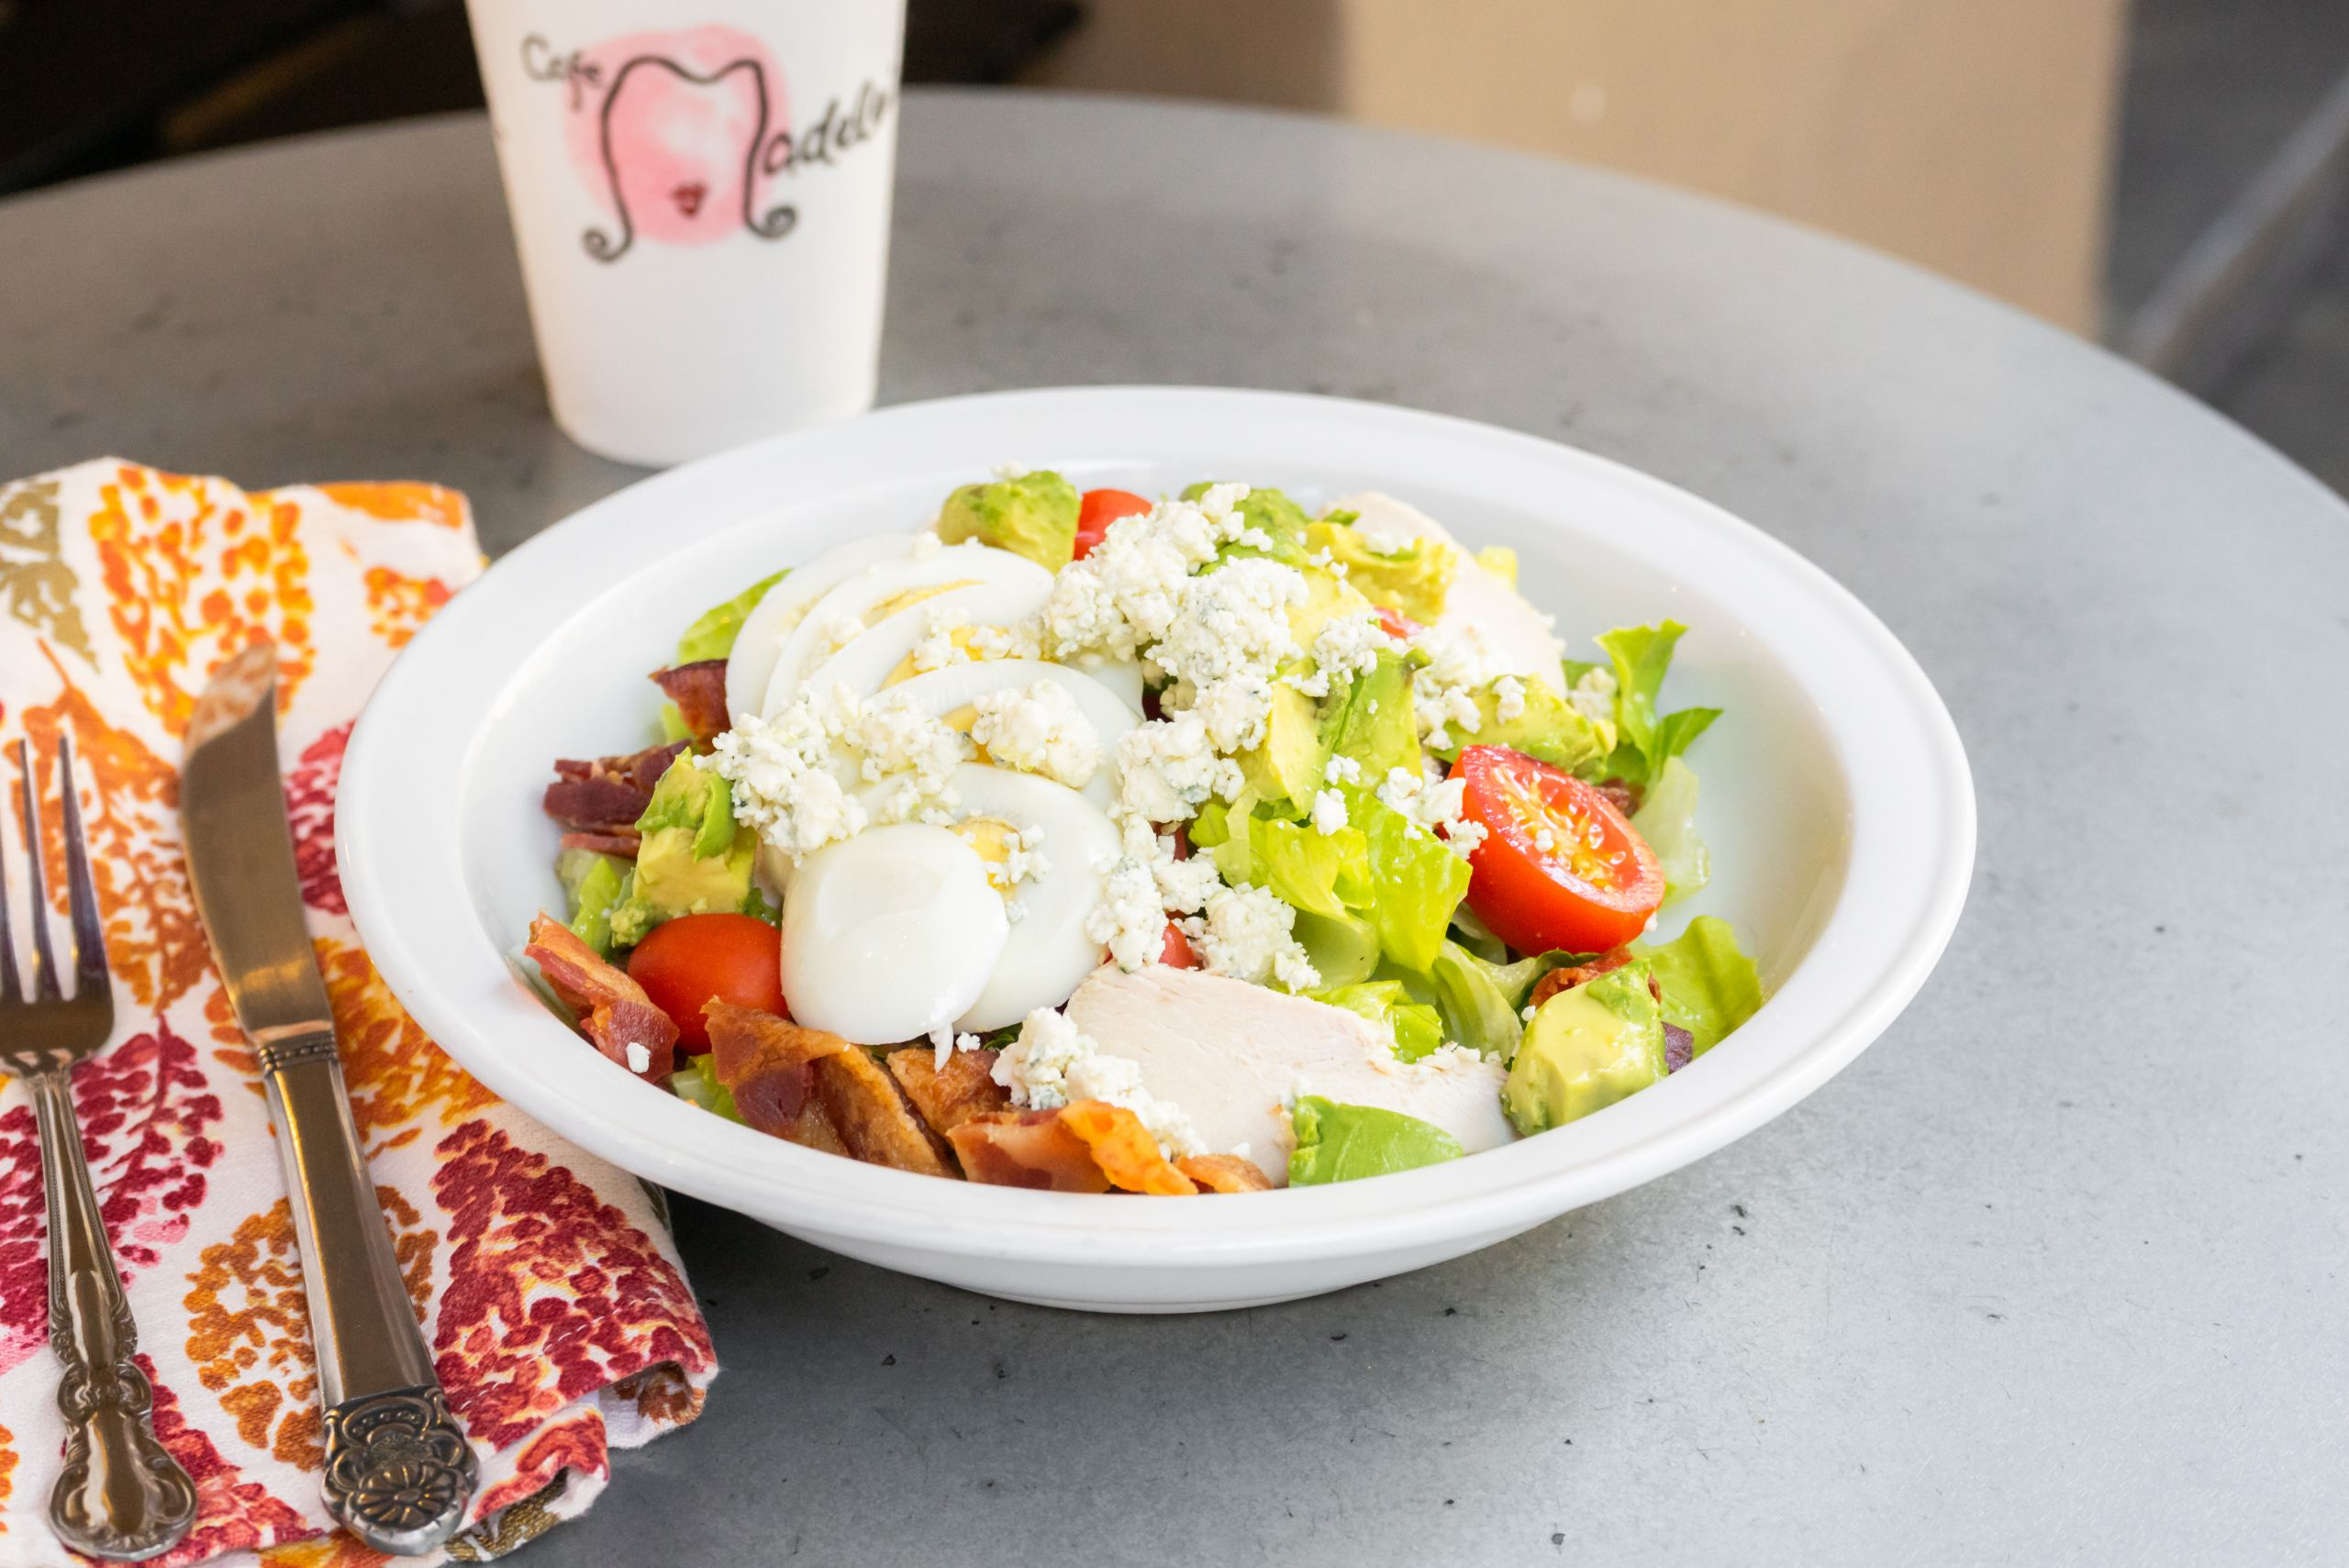 Cobb Salad at Cafe Madeleine Available for Online Ordering